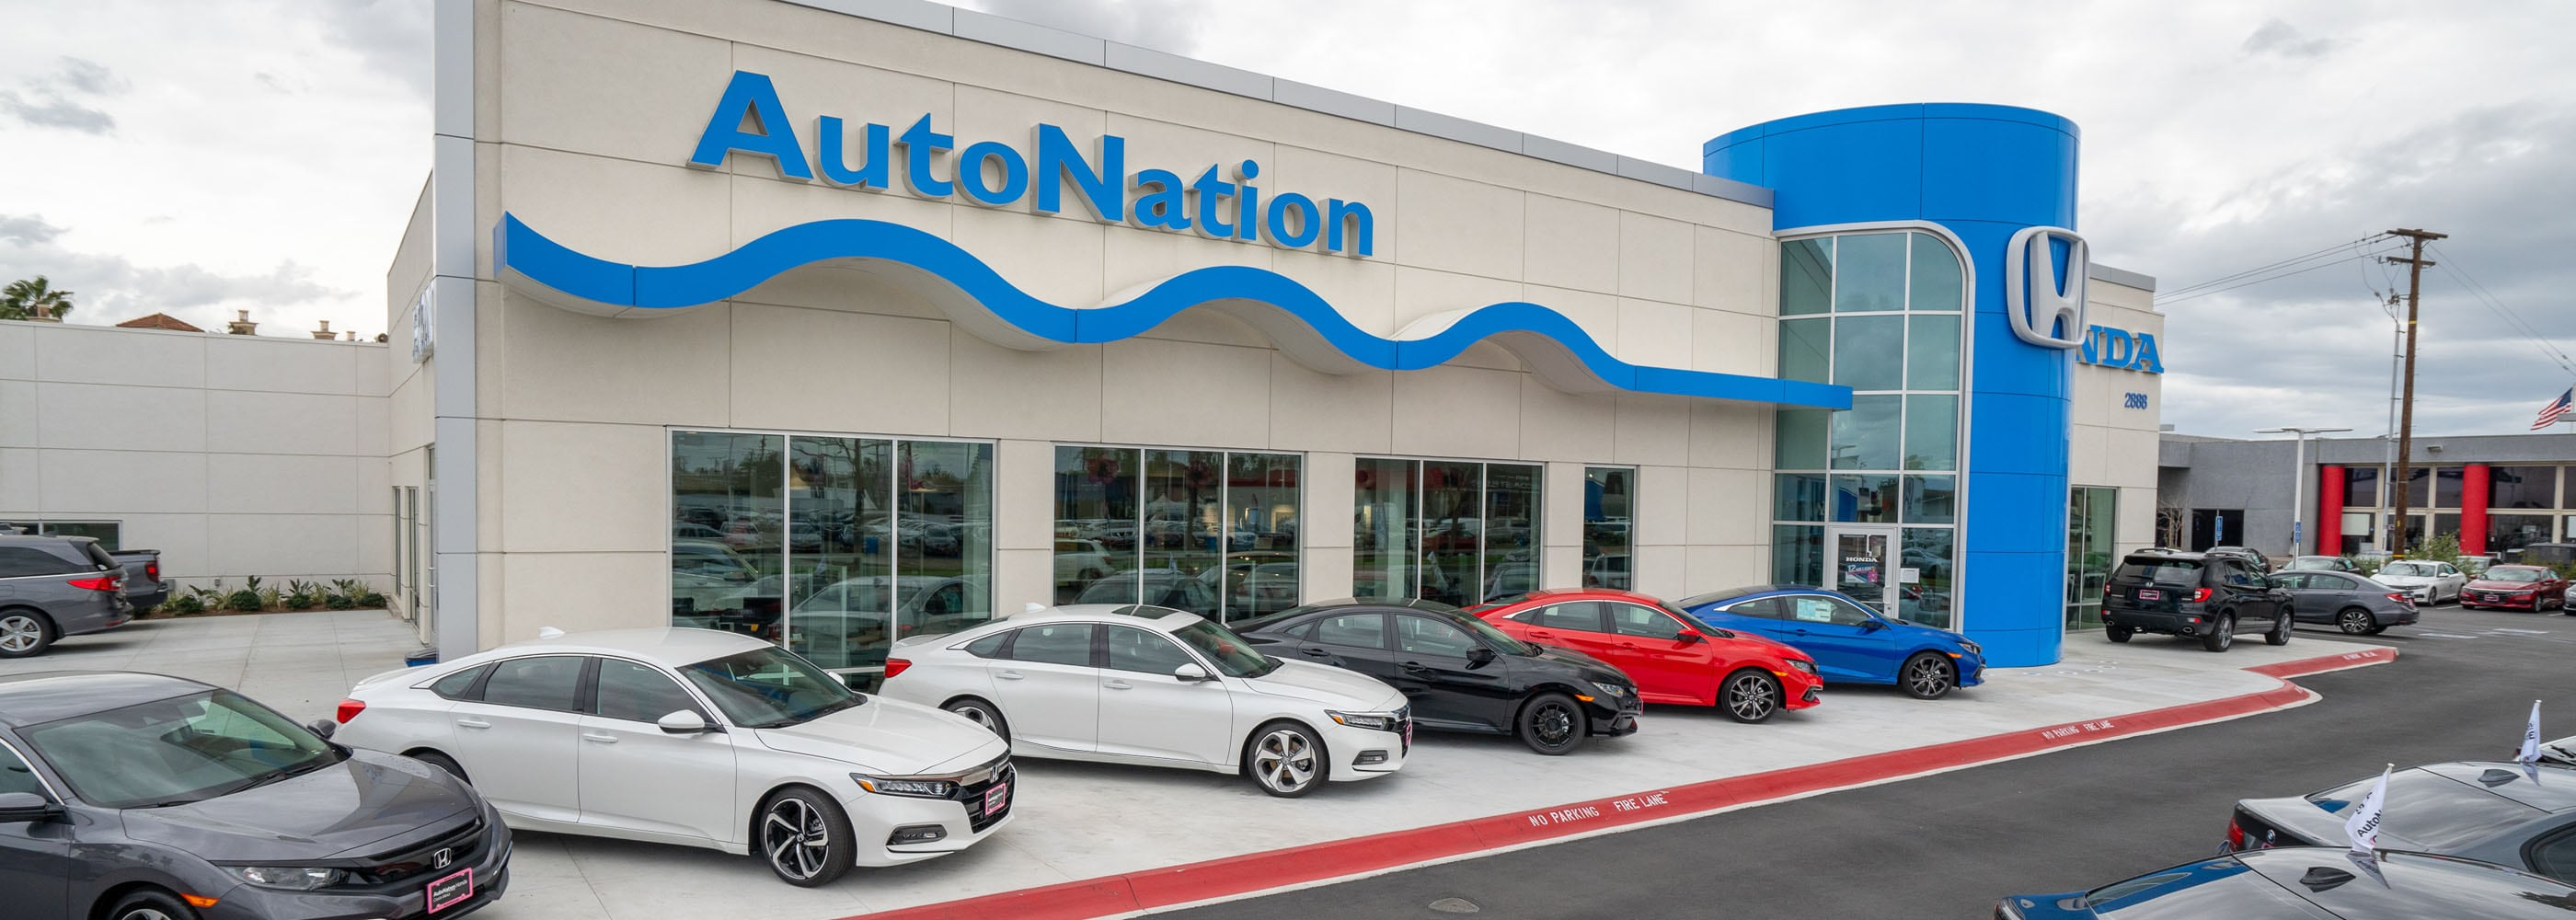 Outside view of AutoNation Honda Costa Mesa